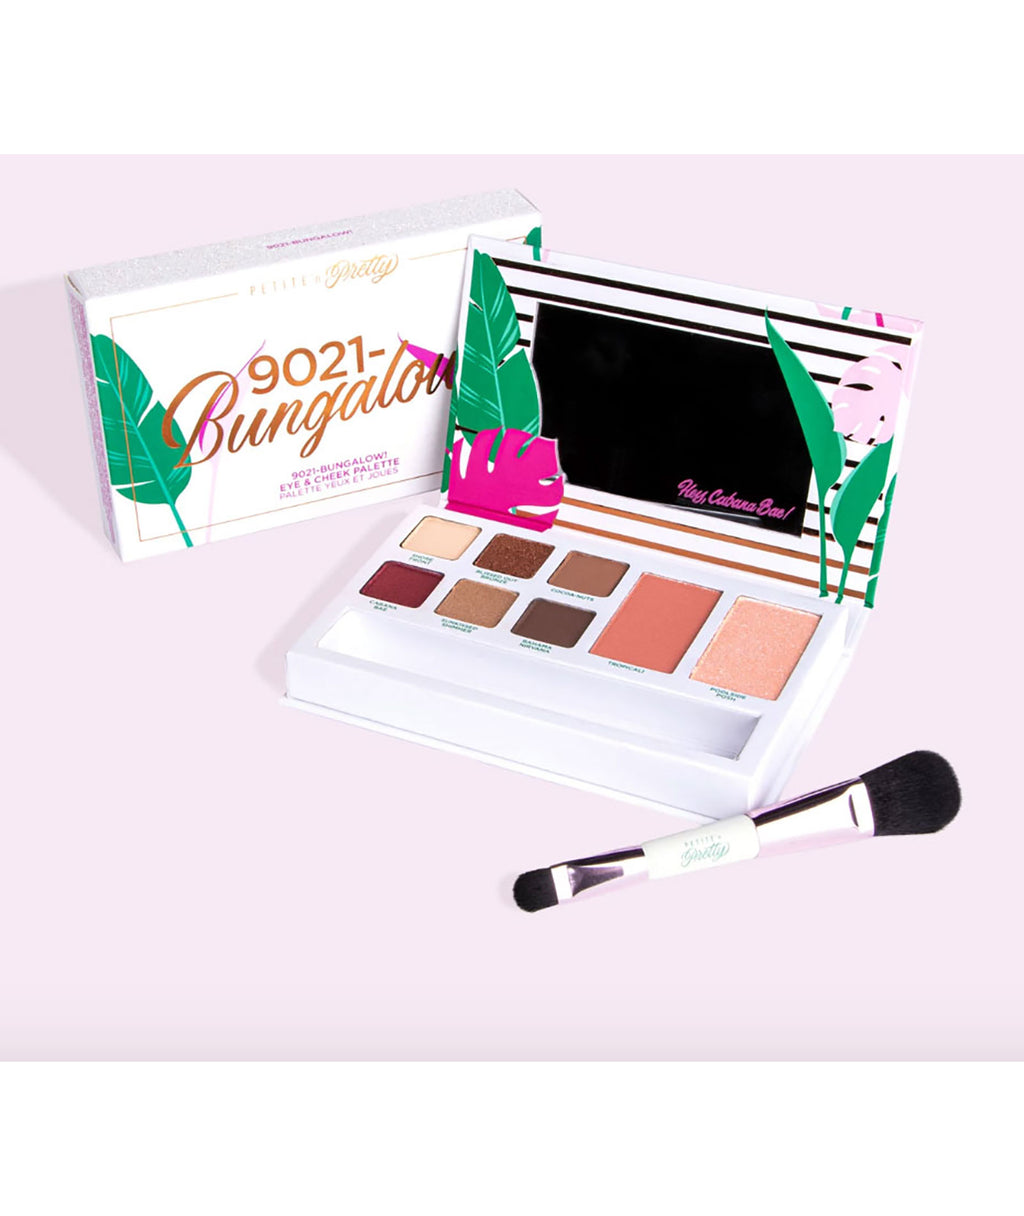 Petite 'n Pretty 90210-Bungalow! Eye & Cheek palette